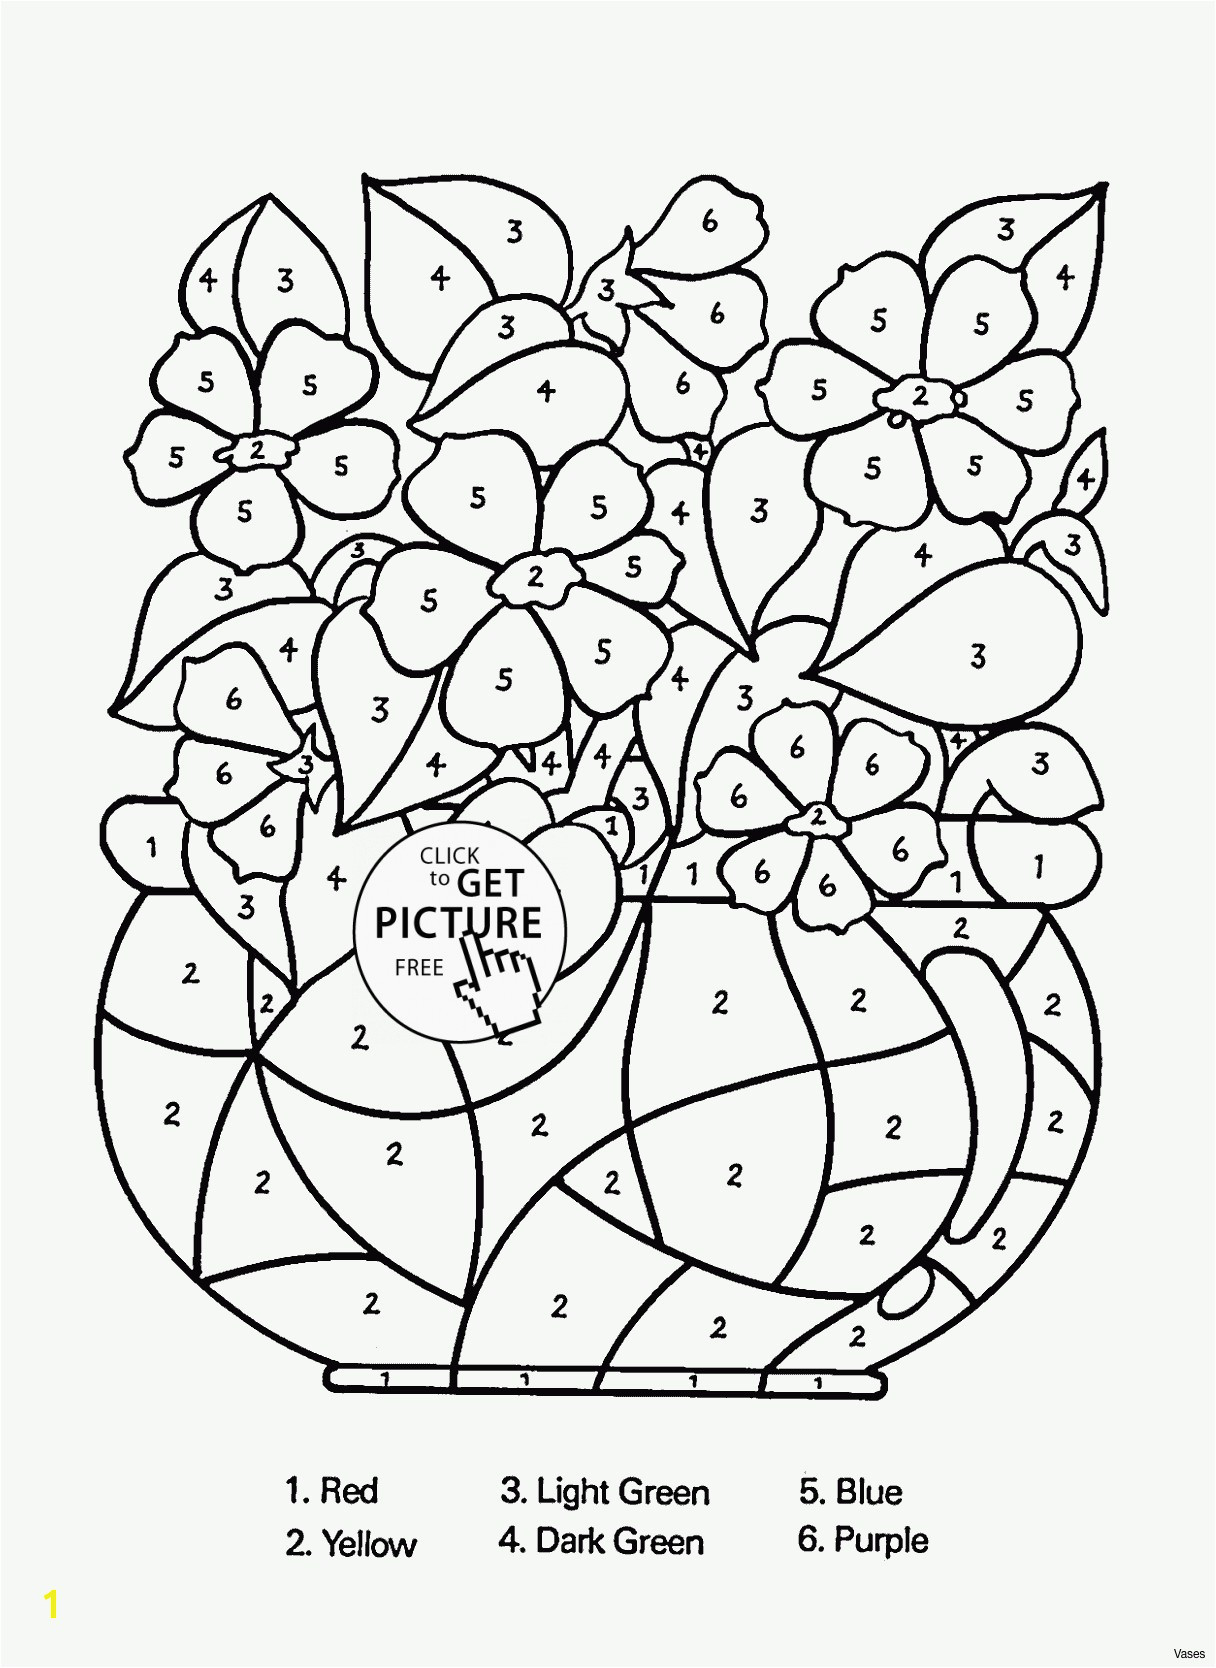 Best Awesome Coloring Page for Adult Od Kids Simple Floral Heart with